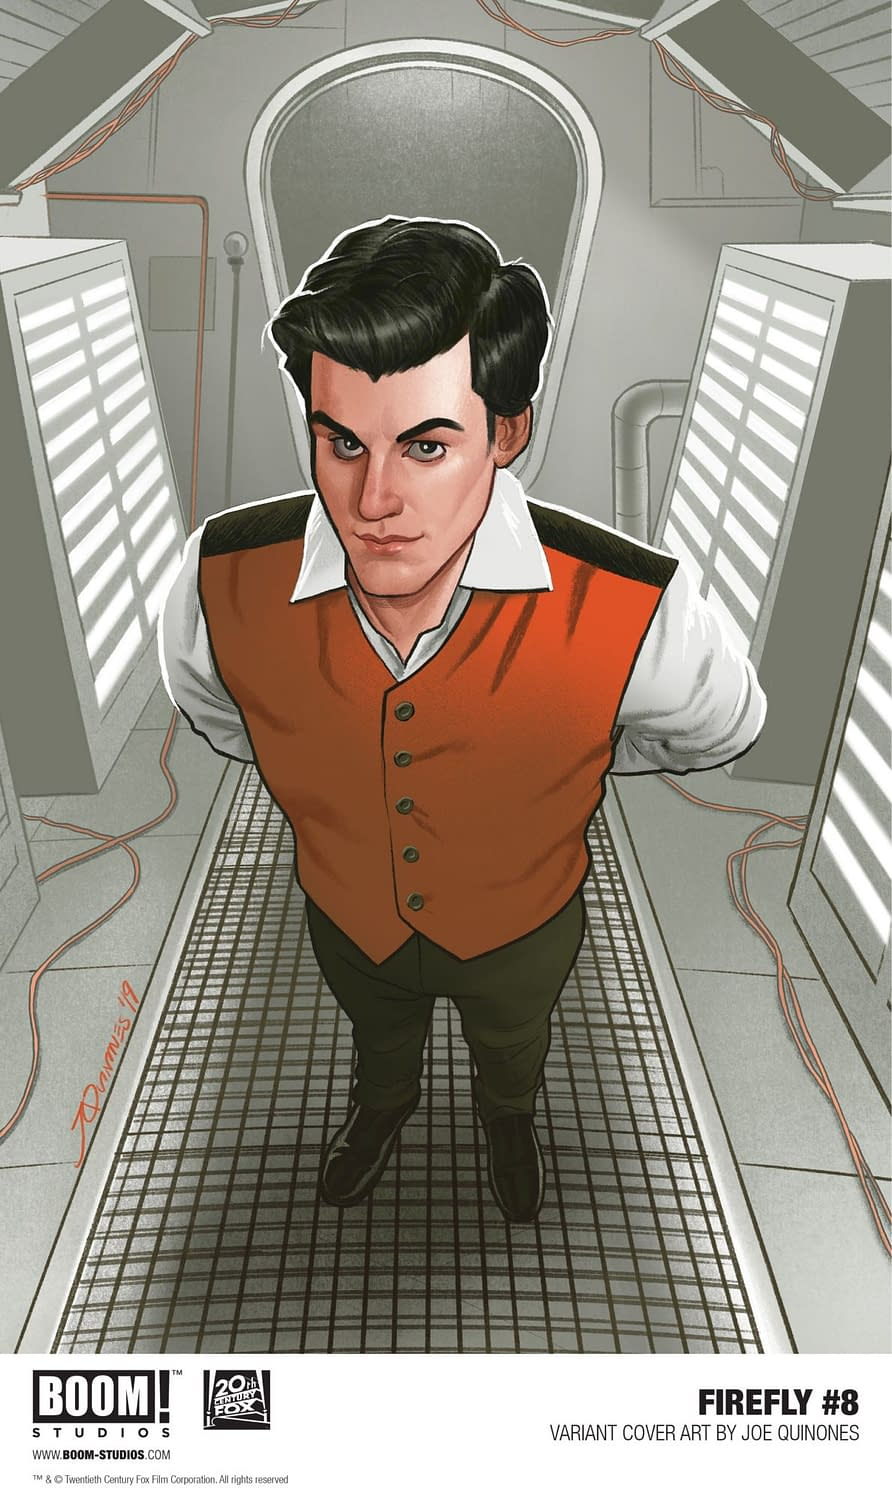 Forget About Fireworks, Firebronies, Here's a First Look at Firefly #8 for July Fourth